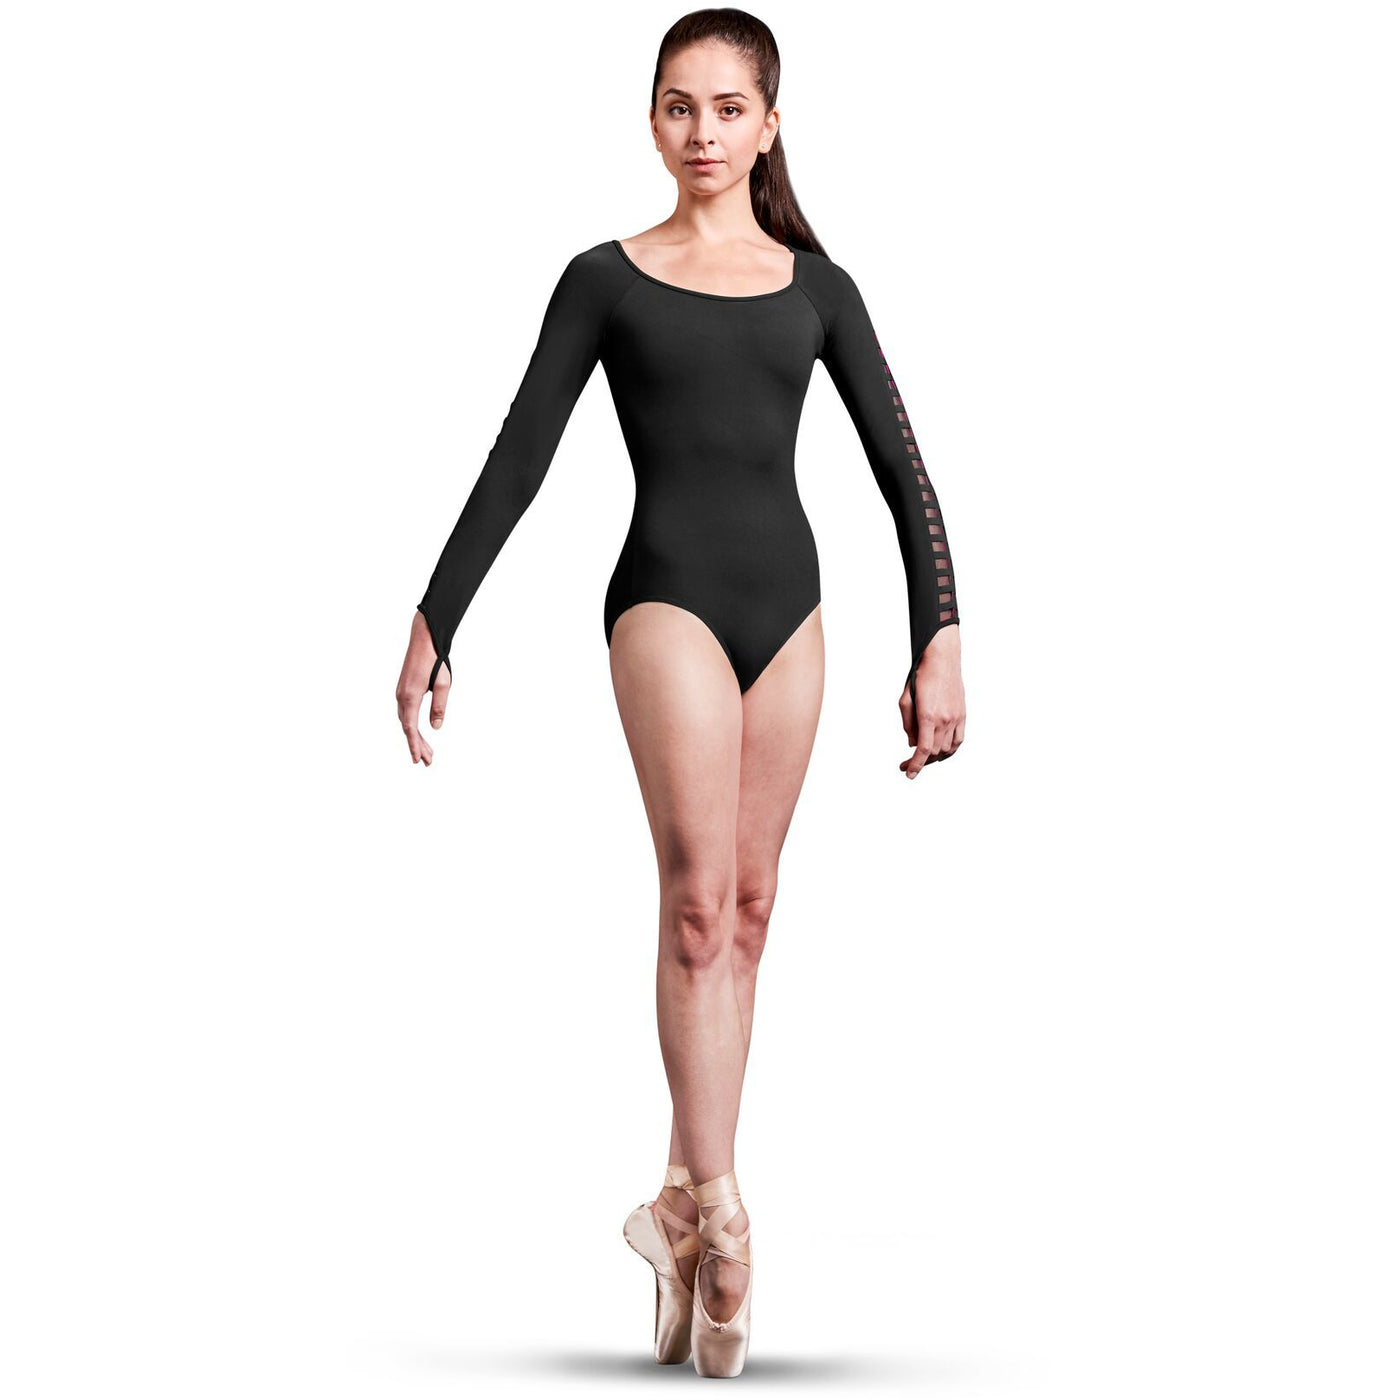 Caged Laser Cut Long Sleeve Leotard - Adult